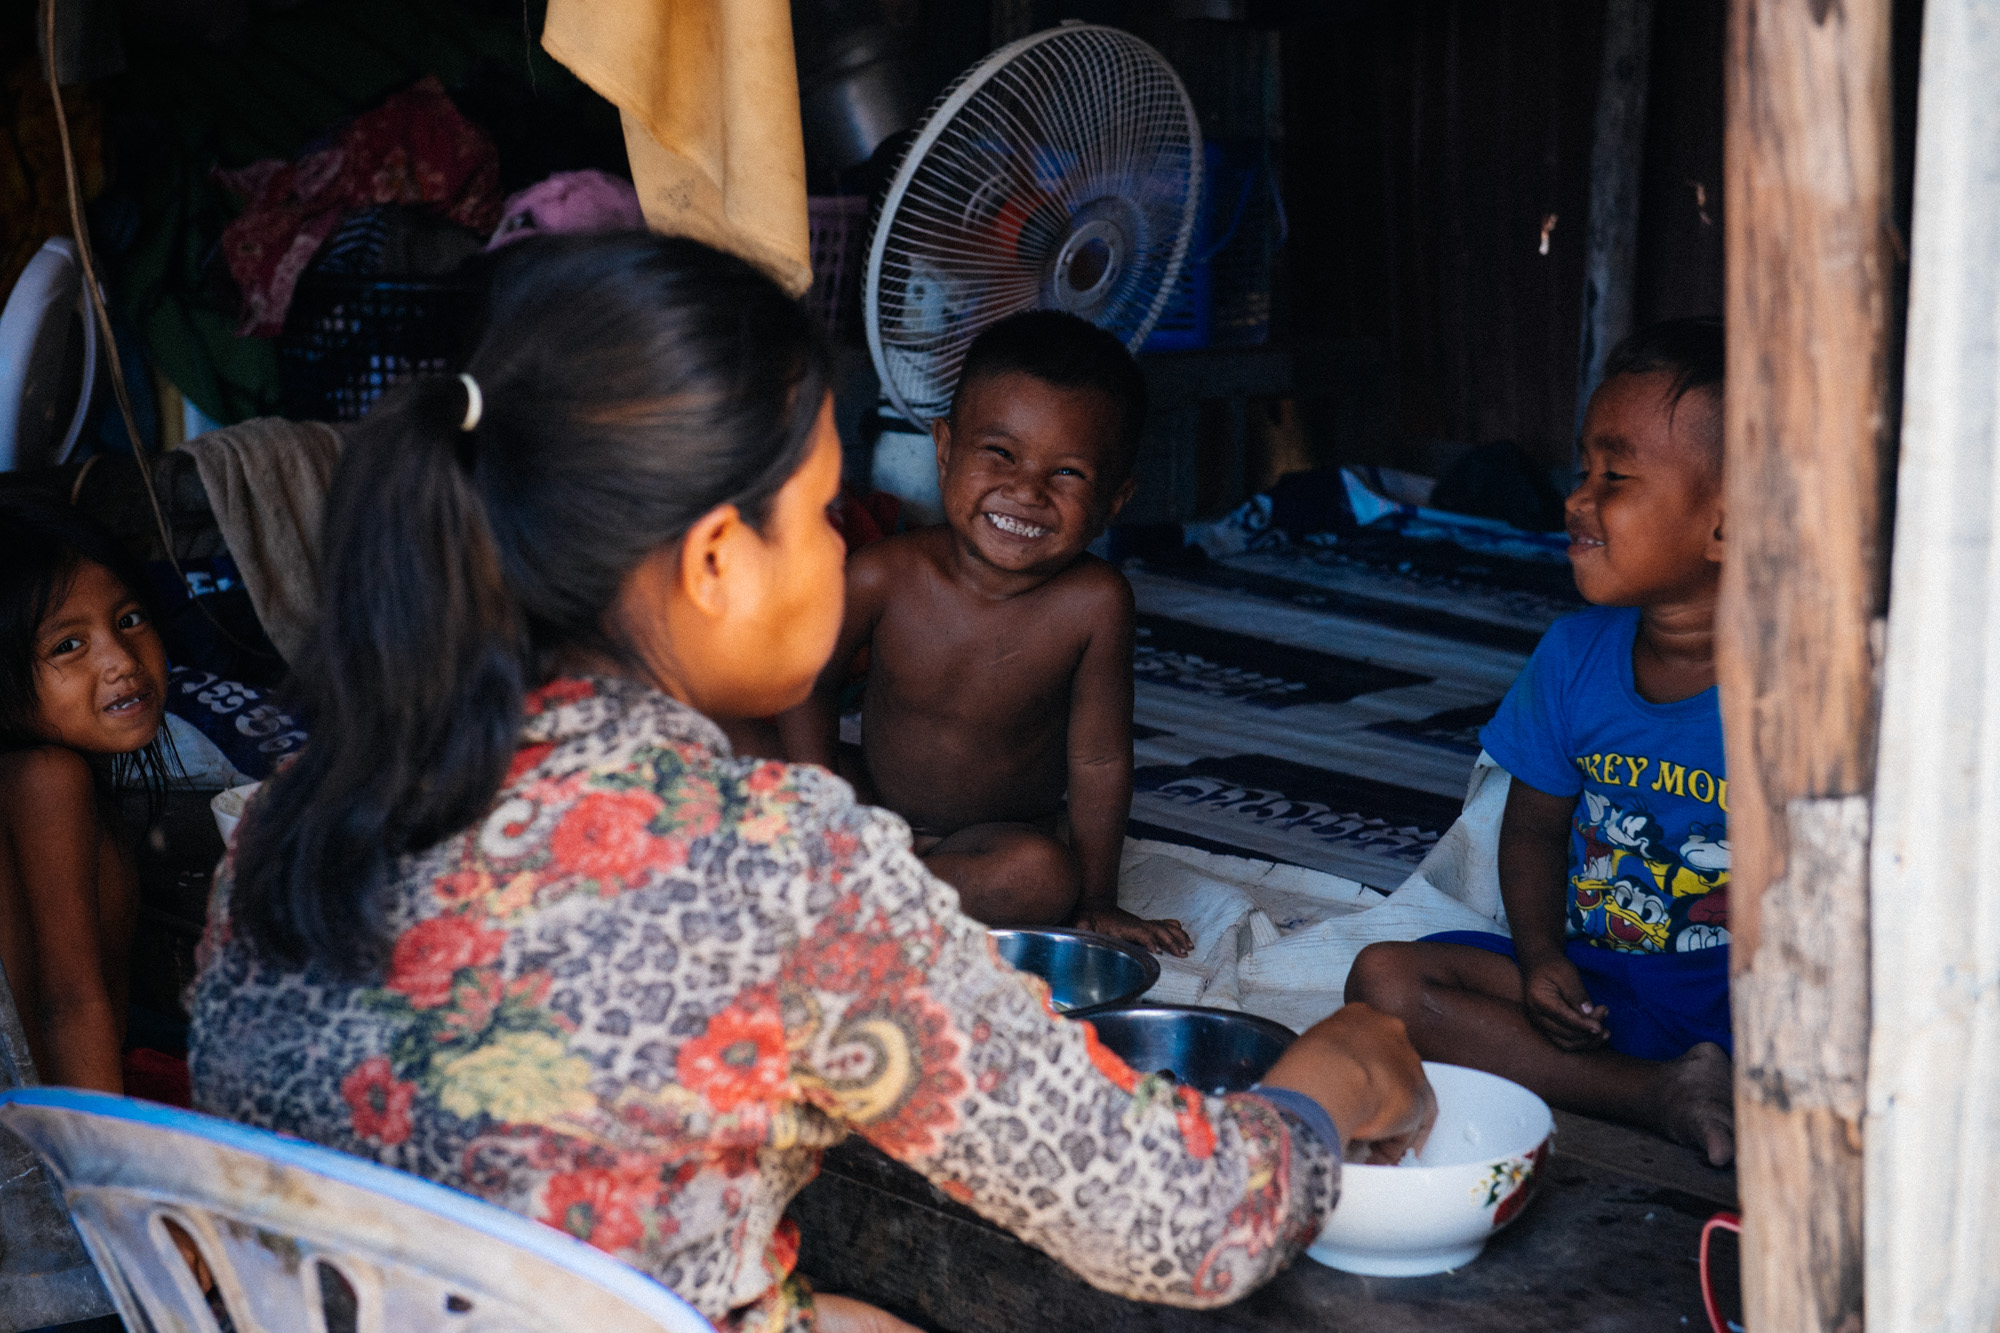 Three kids have lunch with their caretaker. The most instinctive reaction of the little boys was to laugh so hard and wave to the camera as soon as he noticed our presence.